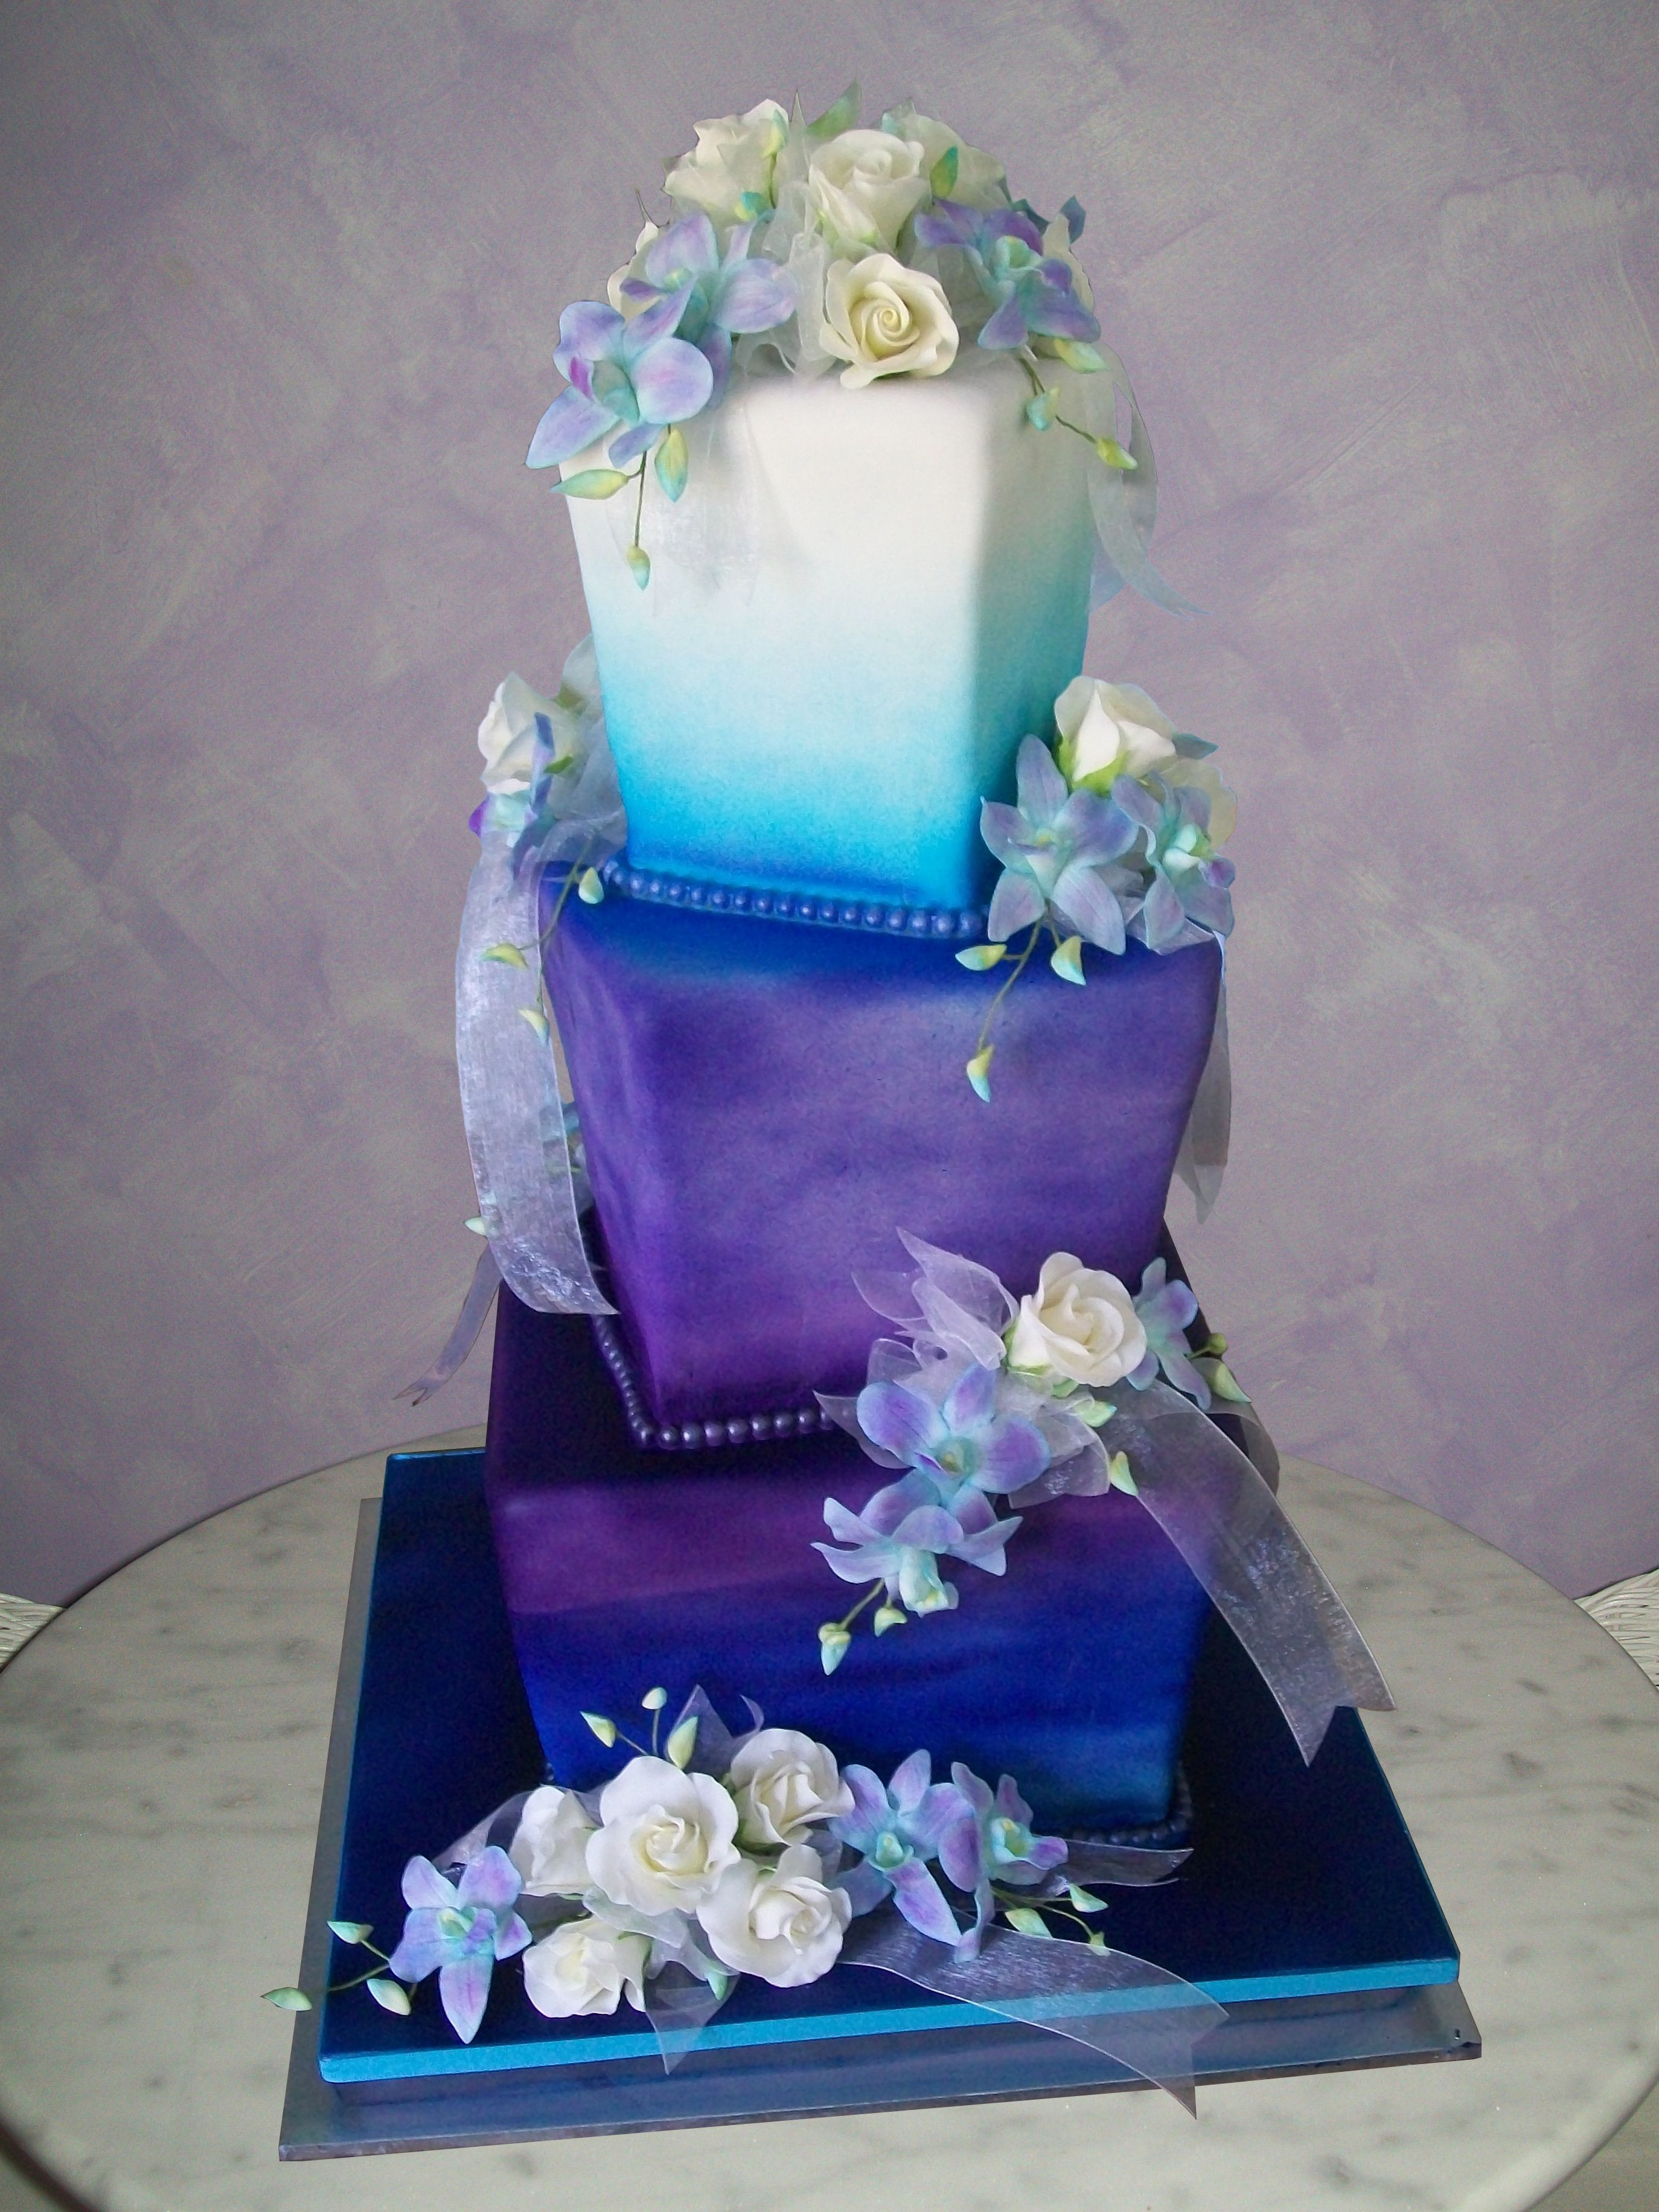 Best Purple Wedding Cakes ideas You Want Tried Yet,purple wedding cake with cupcakes,3 tier purple wedding cake,purple and black wedding cakes,purple and silver birthday cake,purple and blue wedding cake